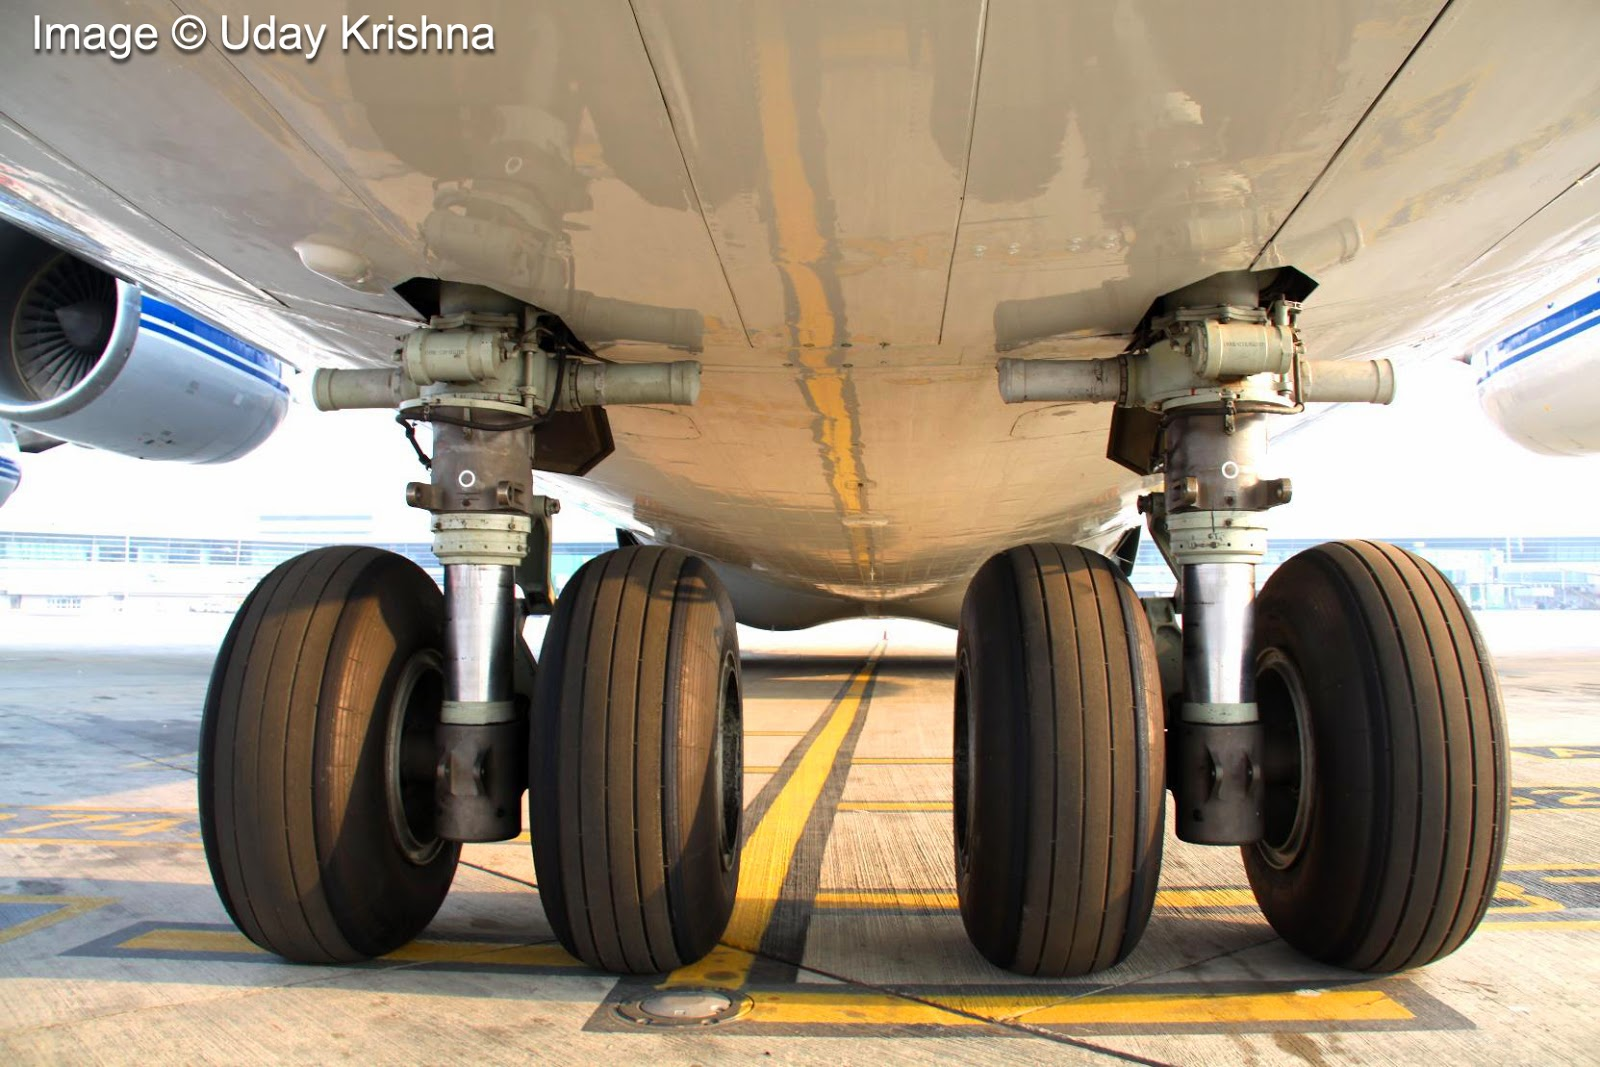 what are airplane tires made of